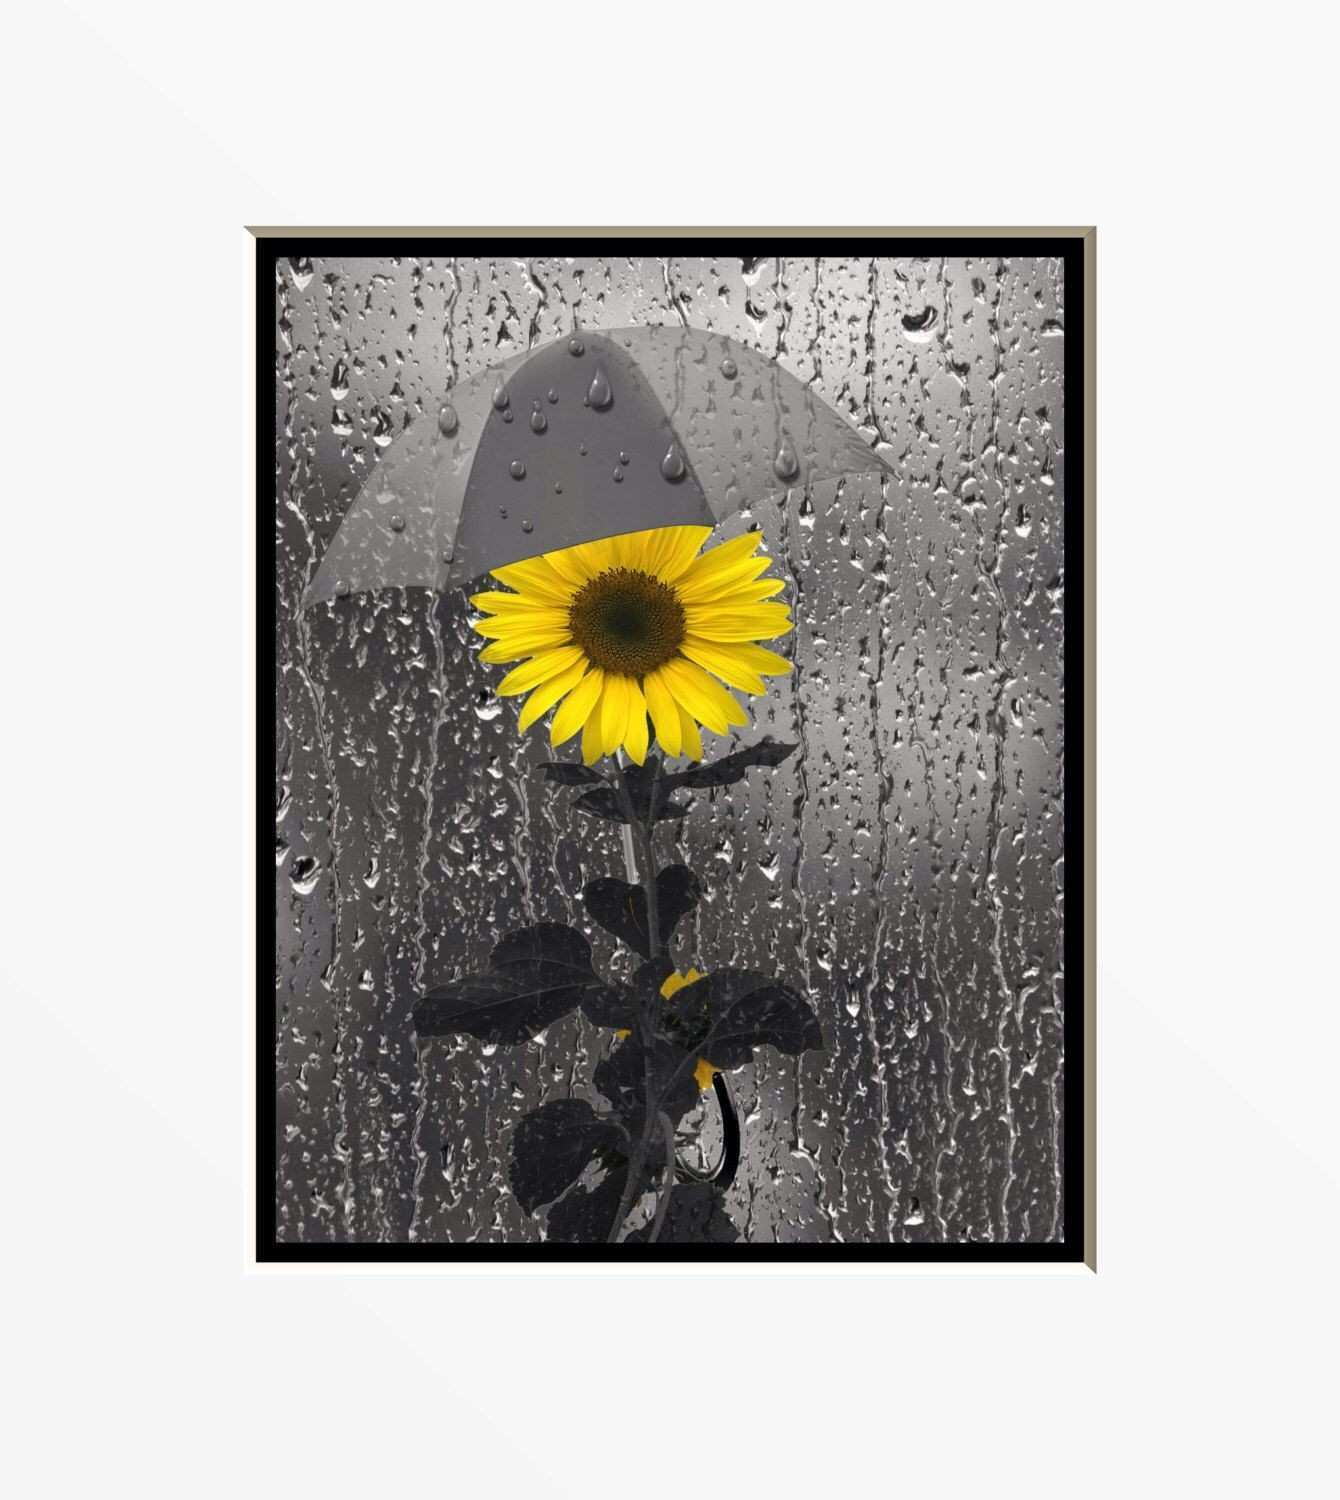 Yellow Gray Wall Art graphy Sunflower Rain Bathroom Home Decor